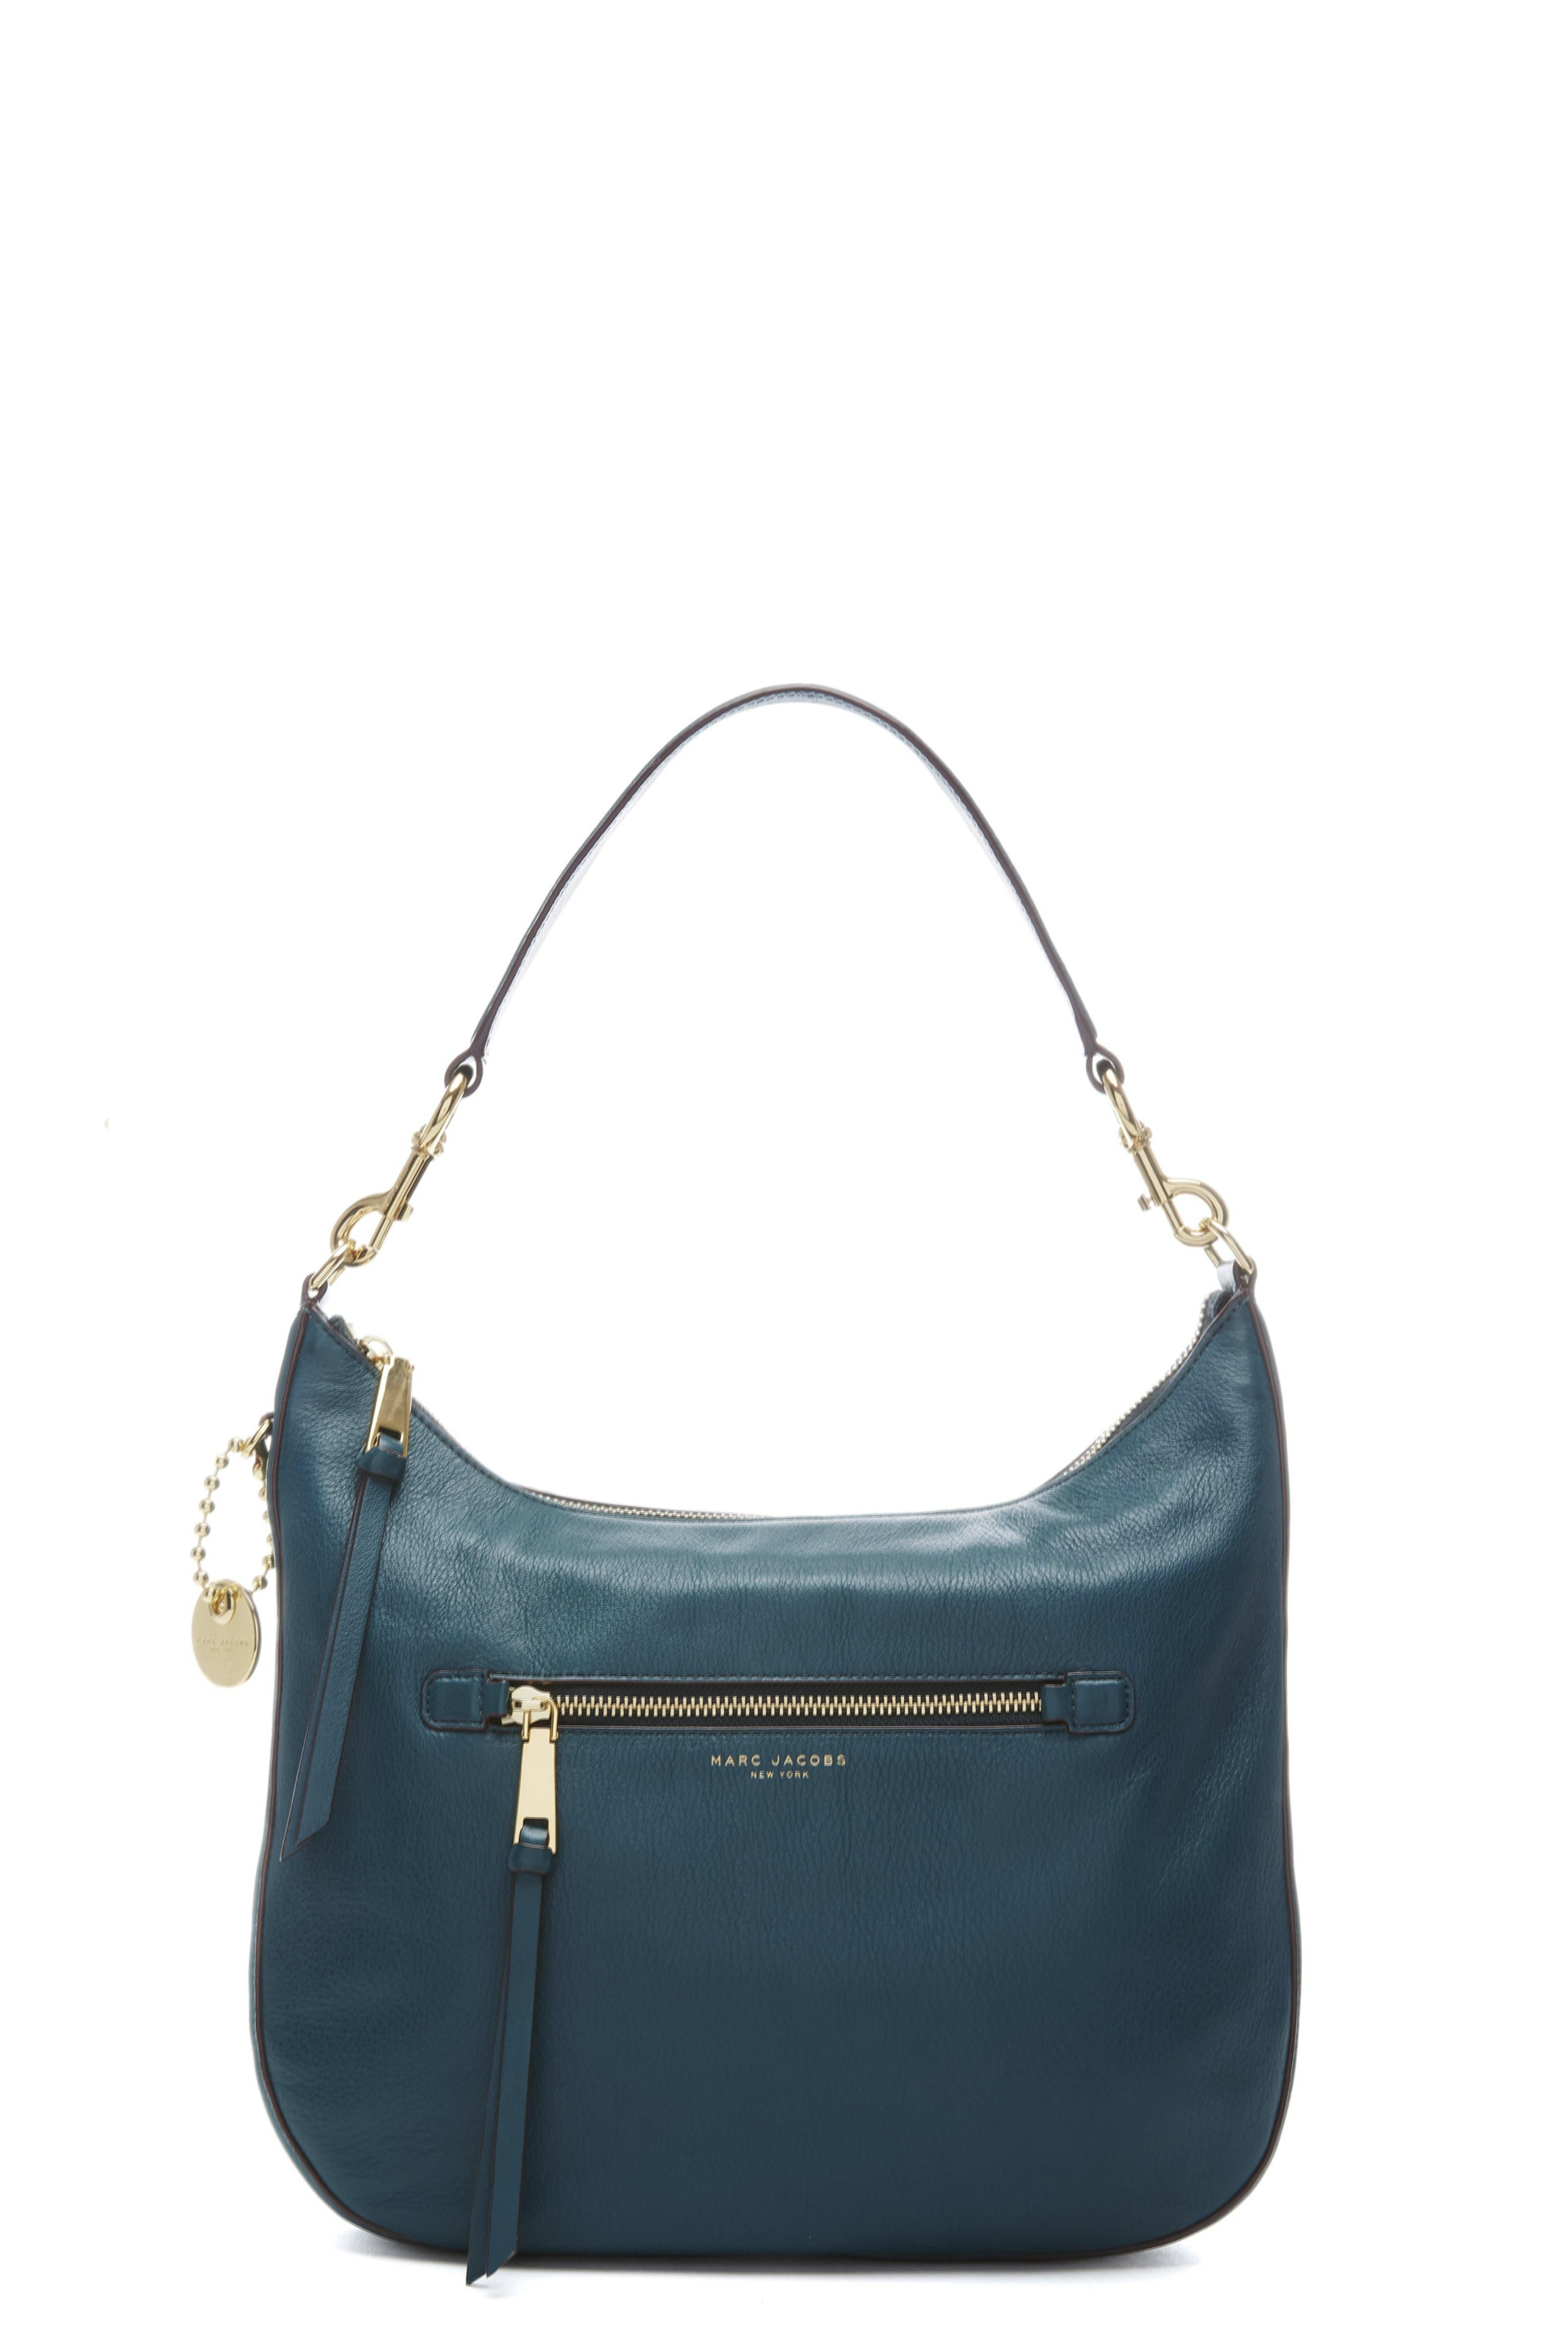 420671e29acc The Marc Jacobs Recruit Hobo mixes high and low with luxe leather and  understated hardware The